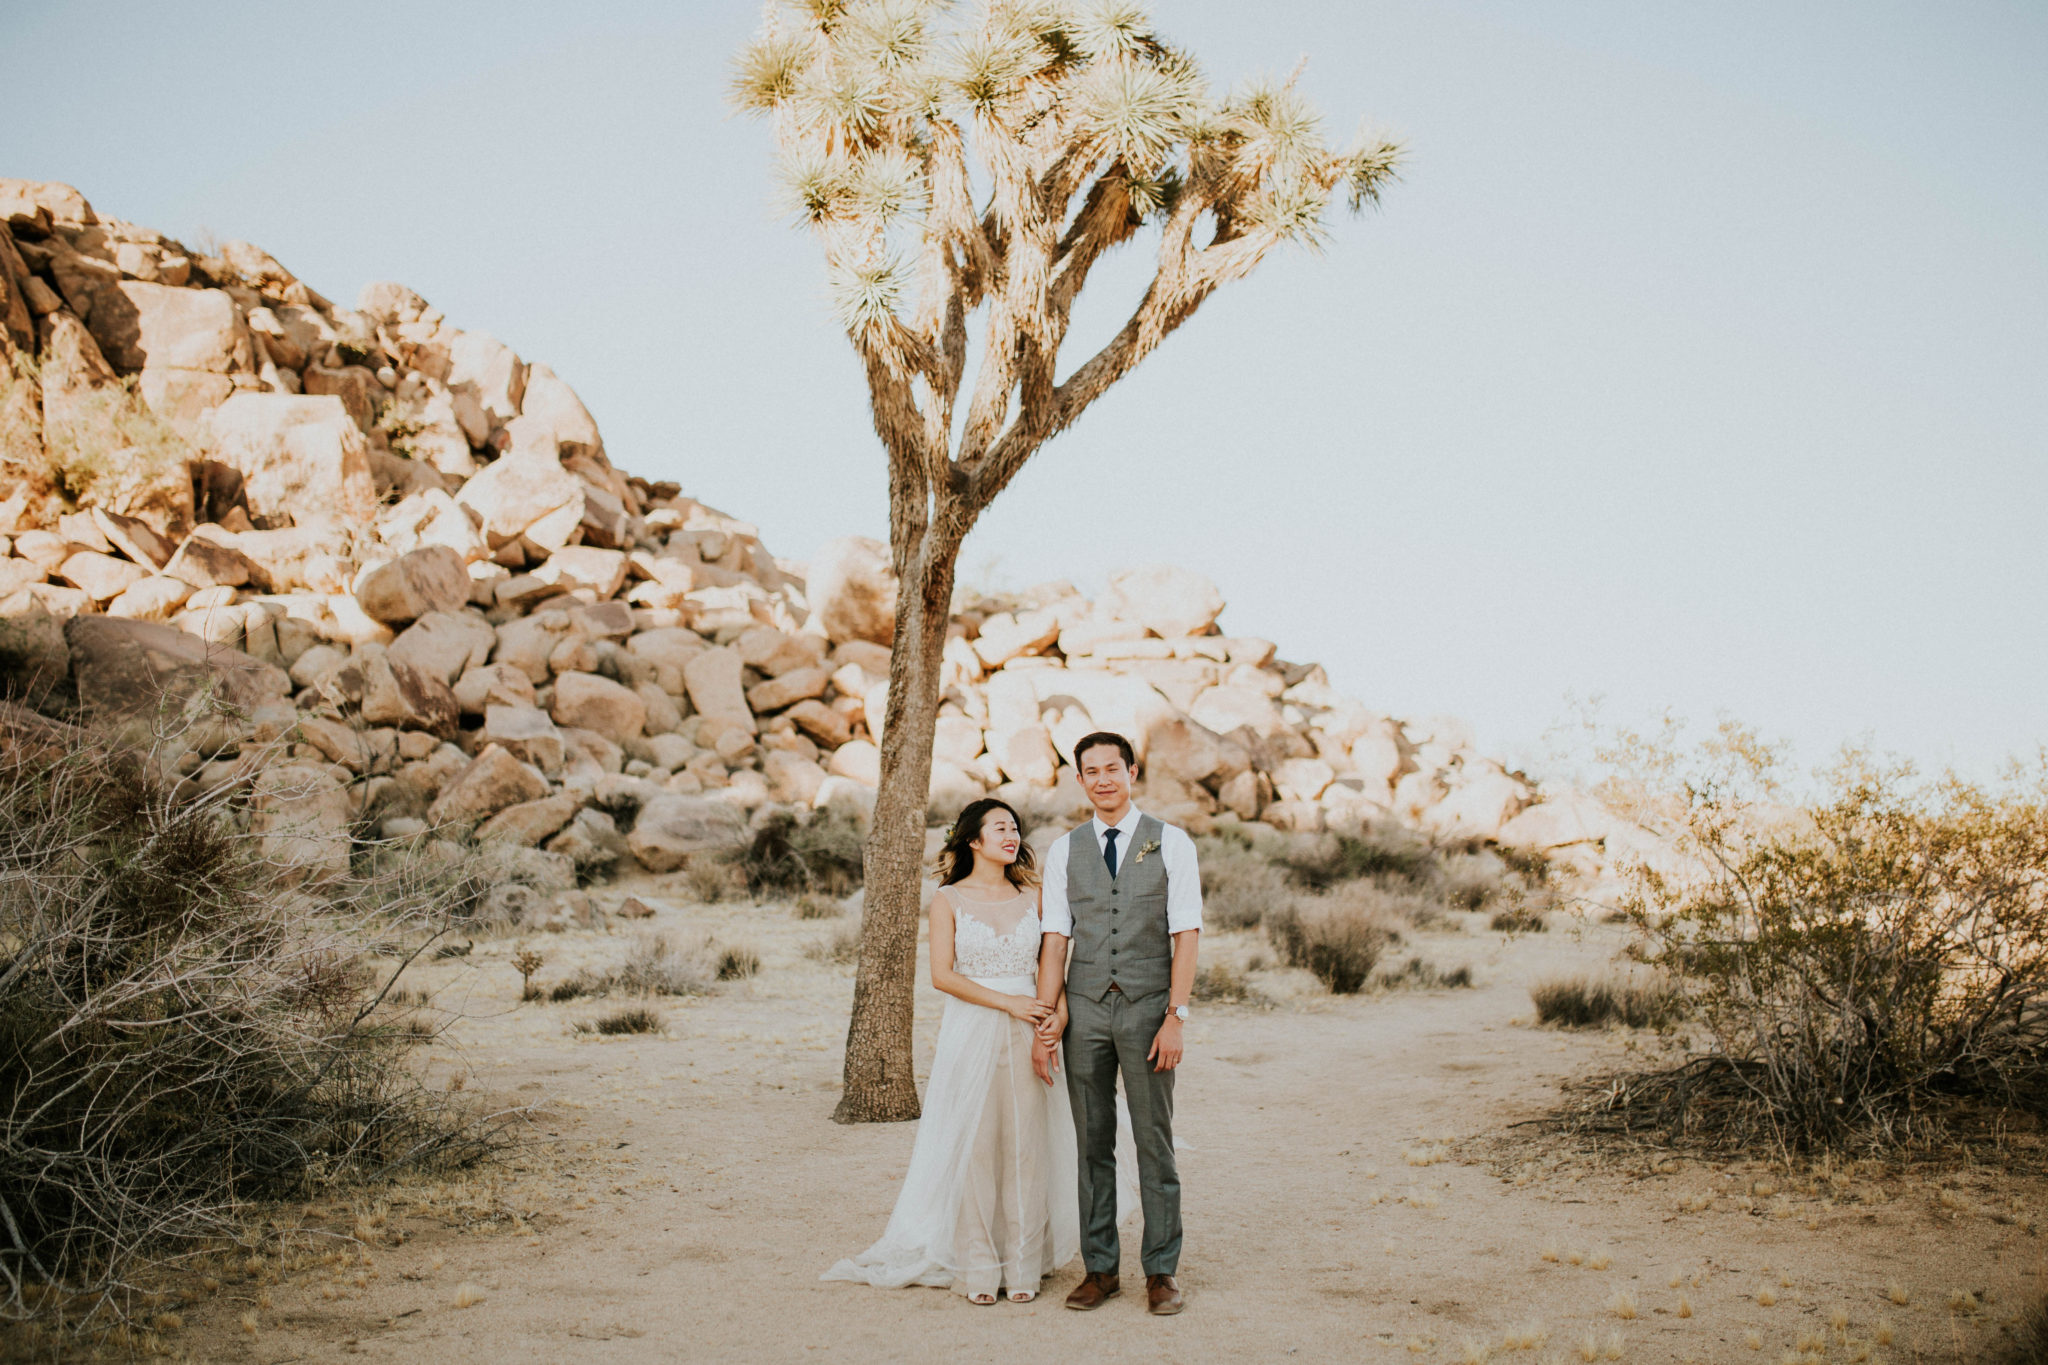 Mandy & Joey Joshua Tree Elopement California Wedding Photographer-136